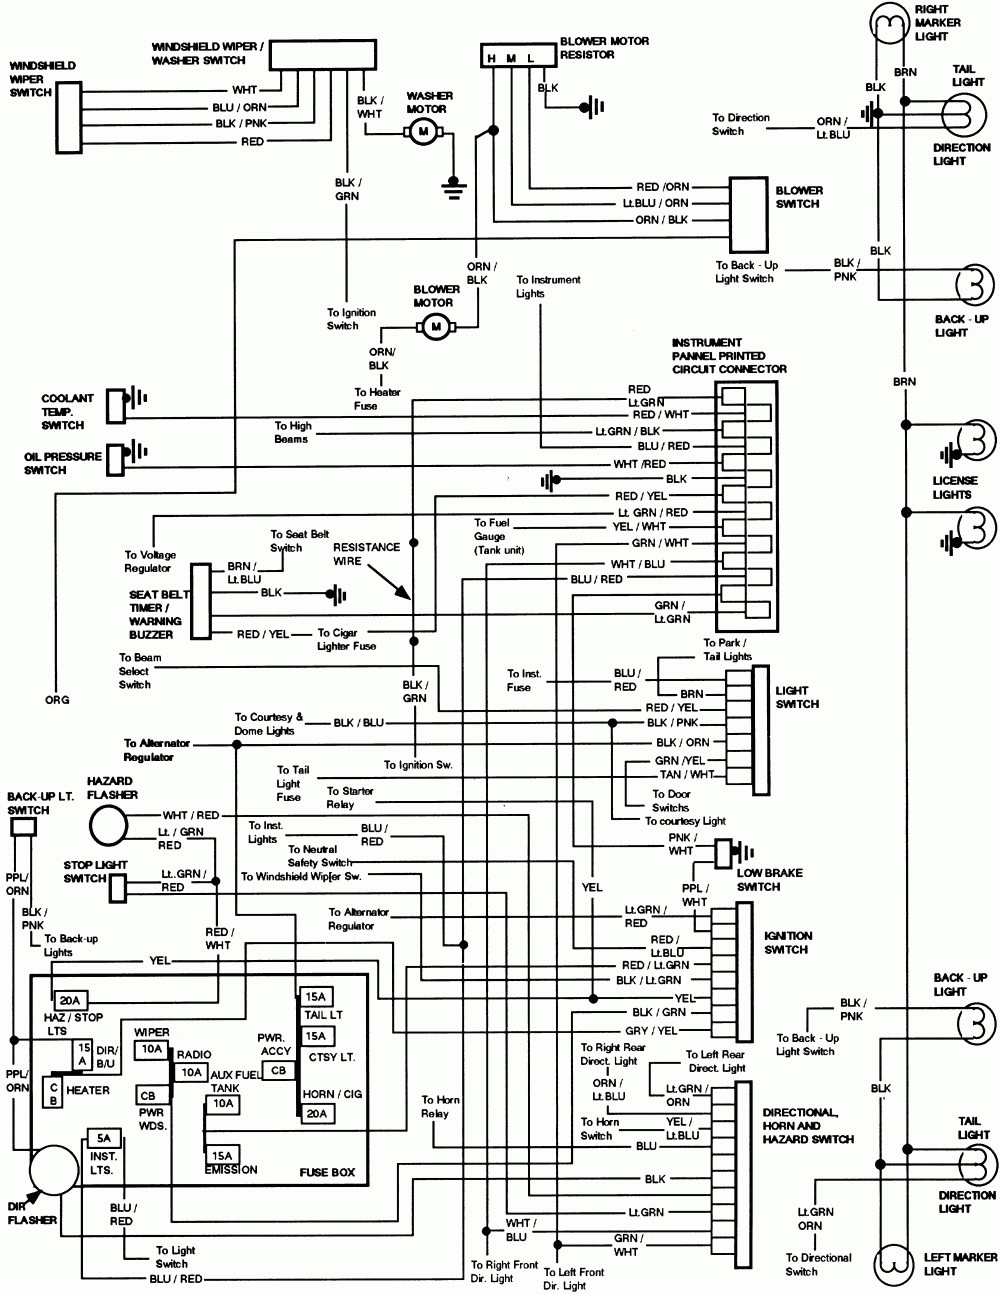 1976 F100 Wiring Diagram | Wiring Diagram F Wiring Schematics on